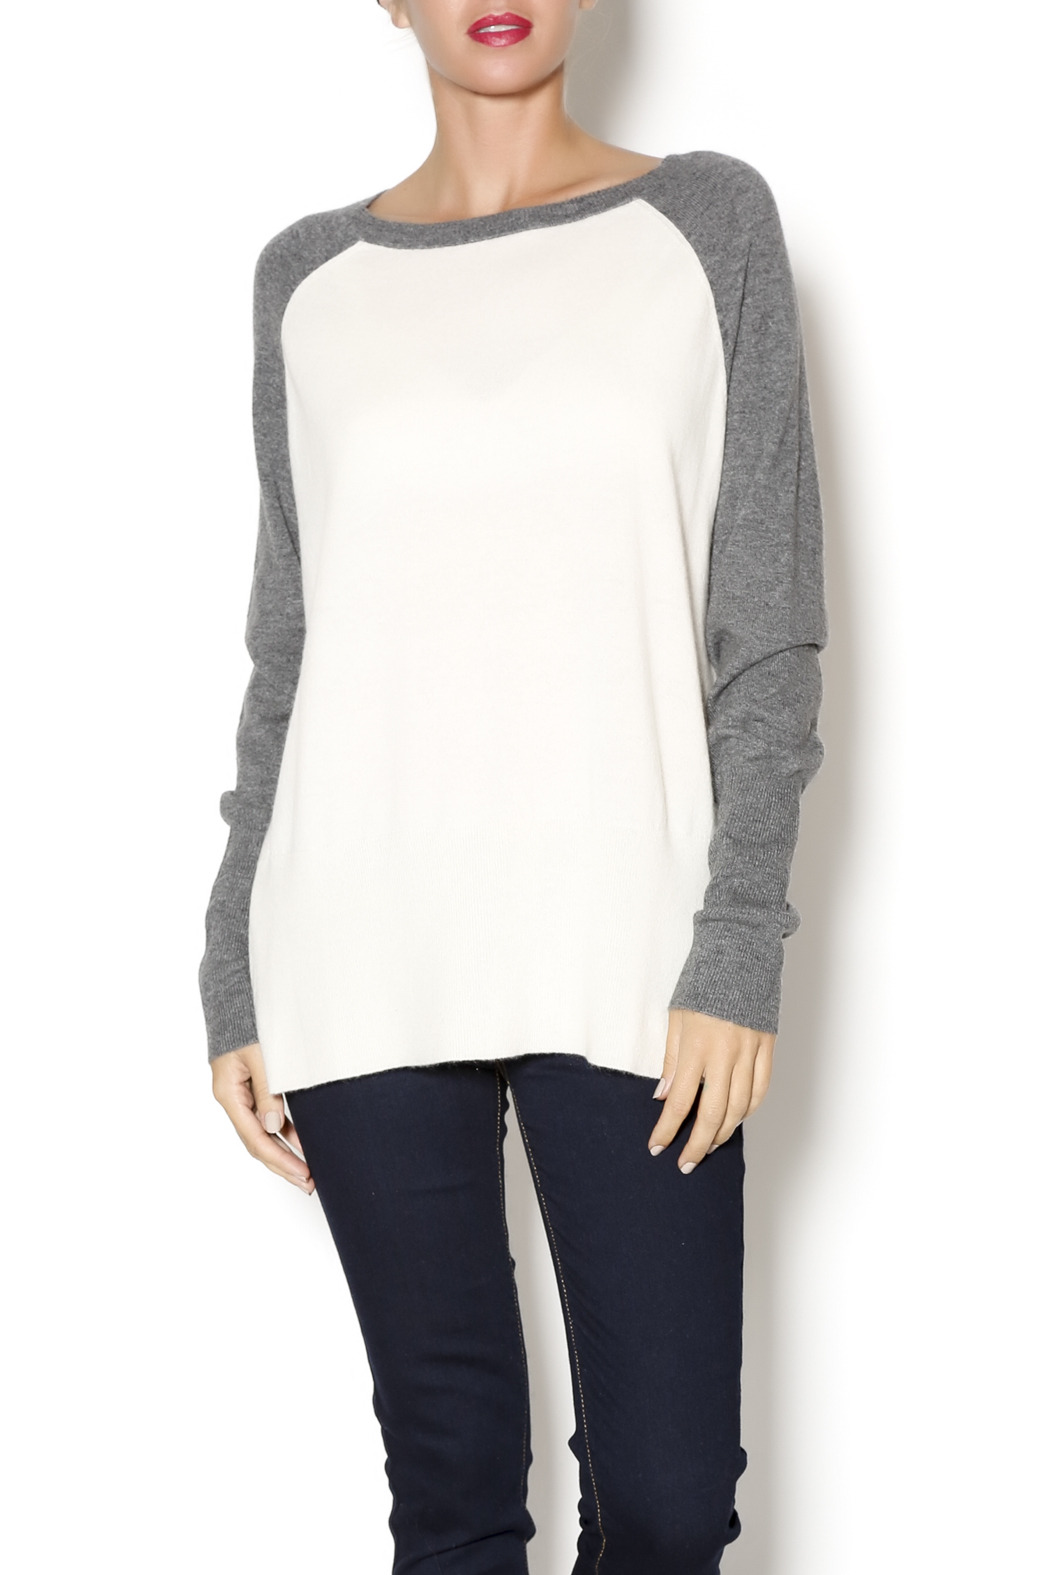 Loma Baseball Oversized Boyfriend Sweater from Amarillo by Lilly ...